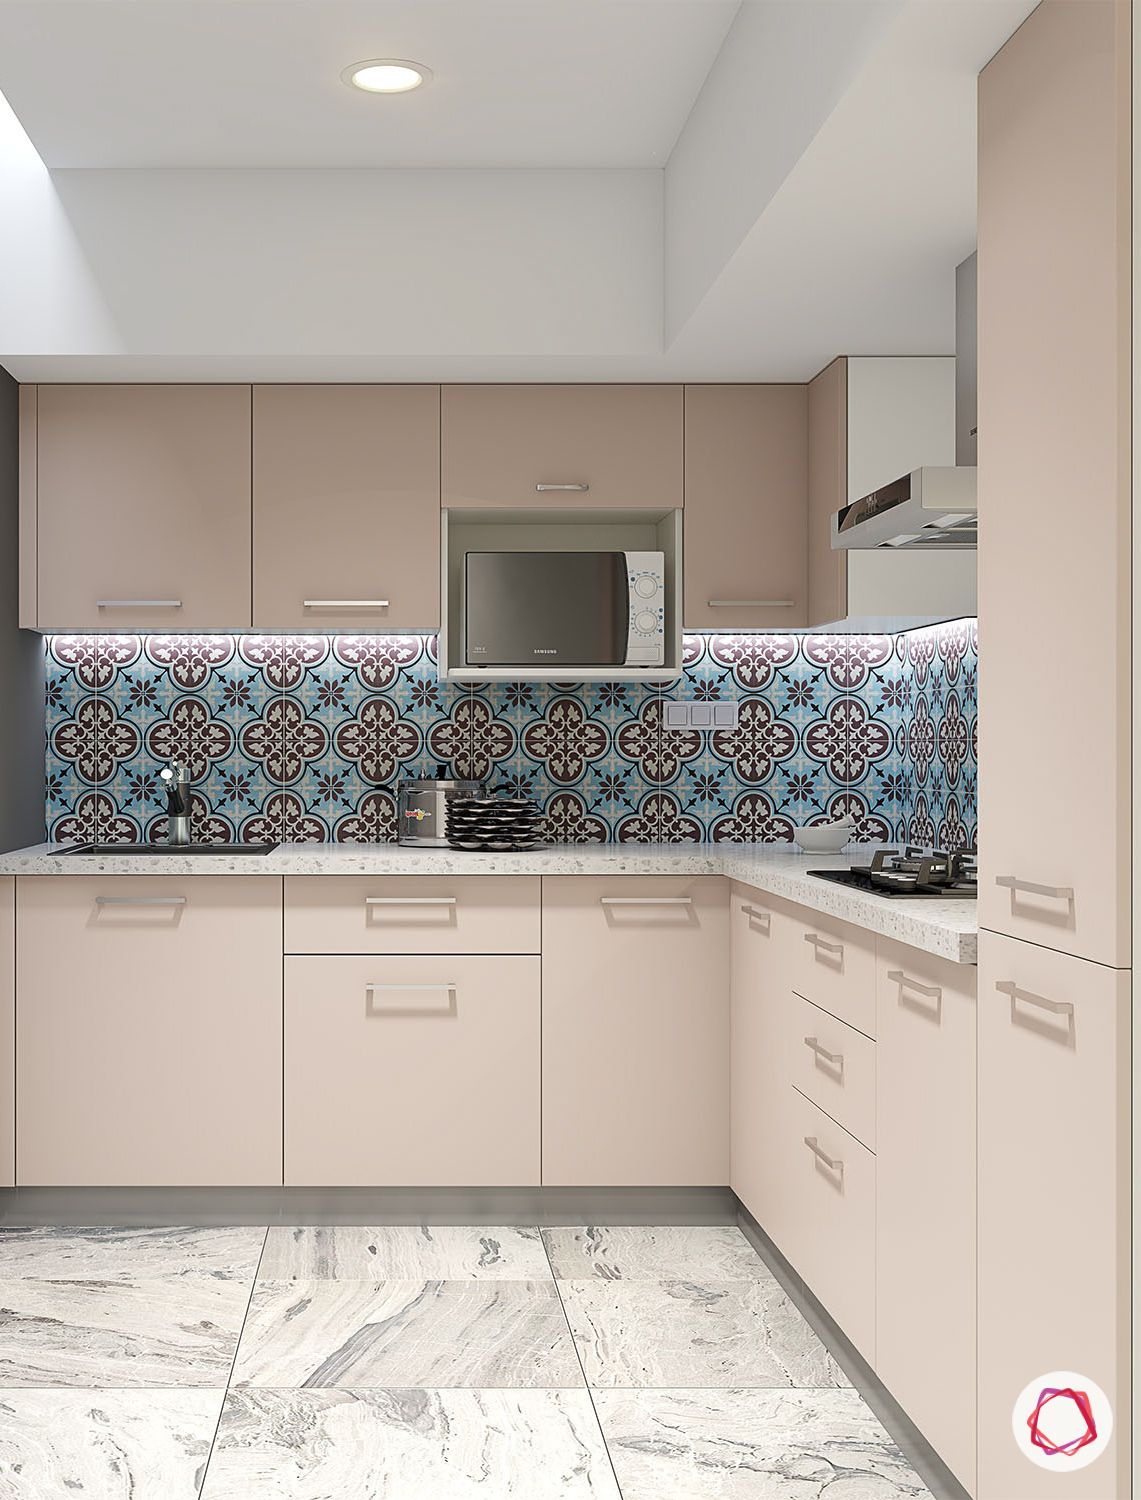 Kitchen Design And Tiles Pastel Modular Kitchen In India Loving This Trend Pastels